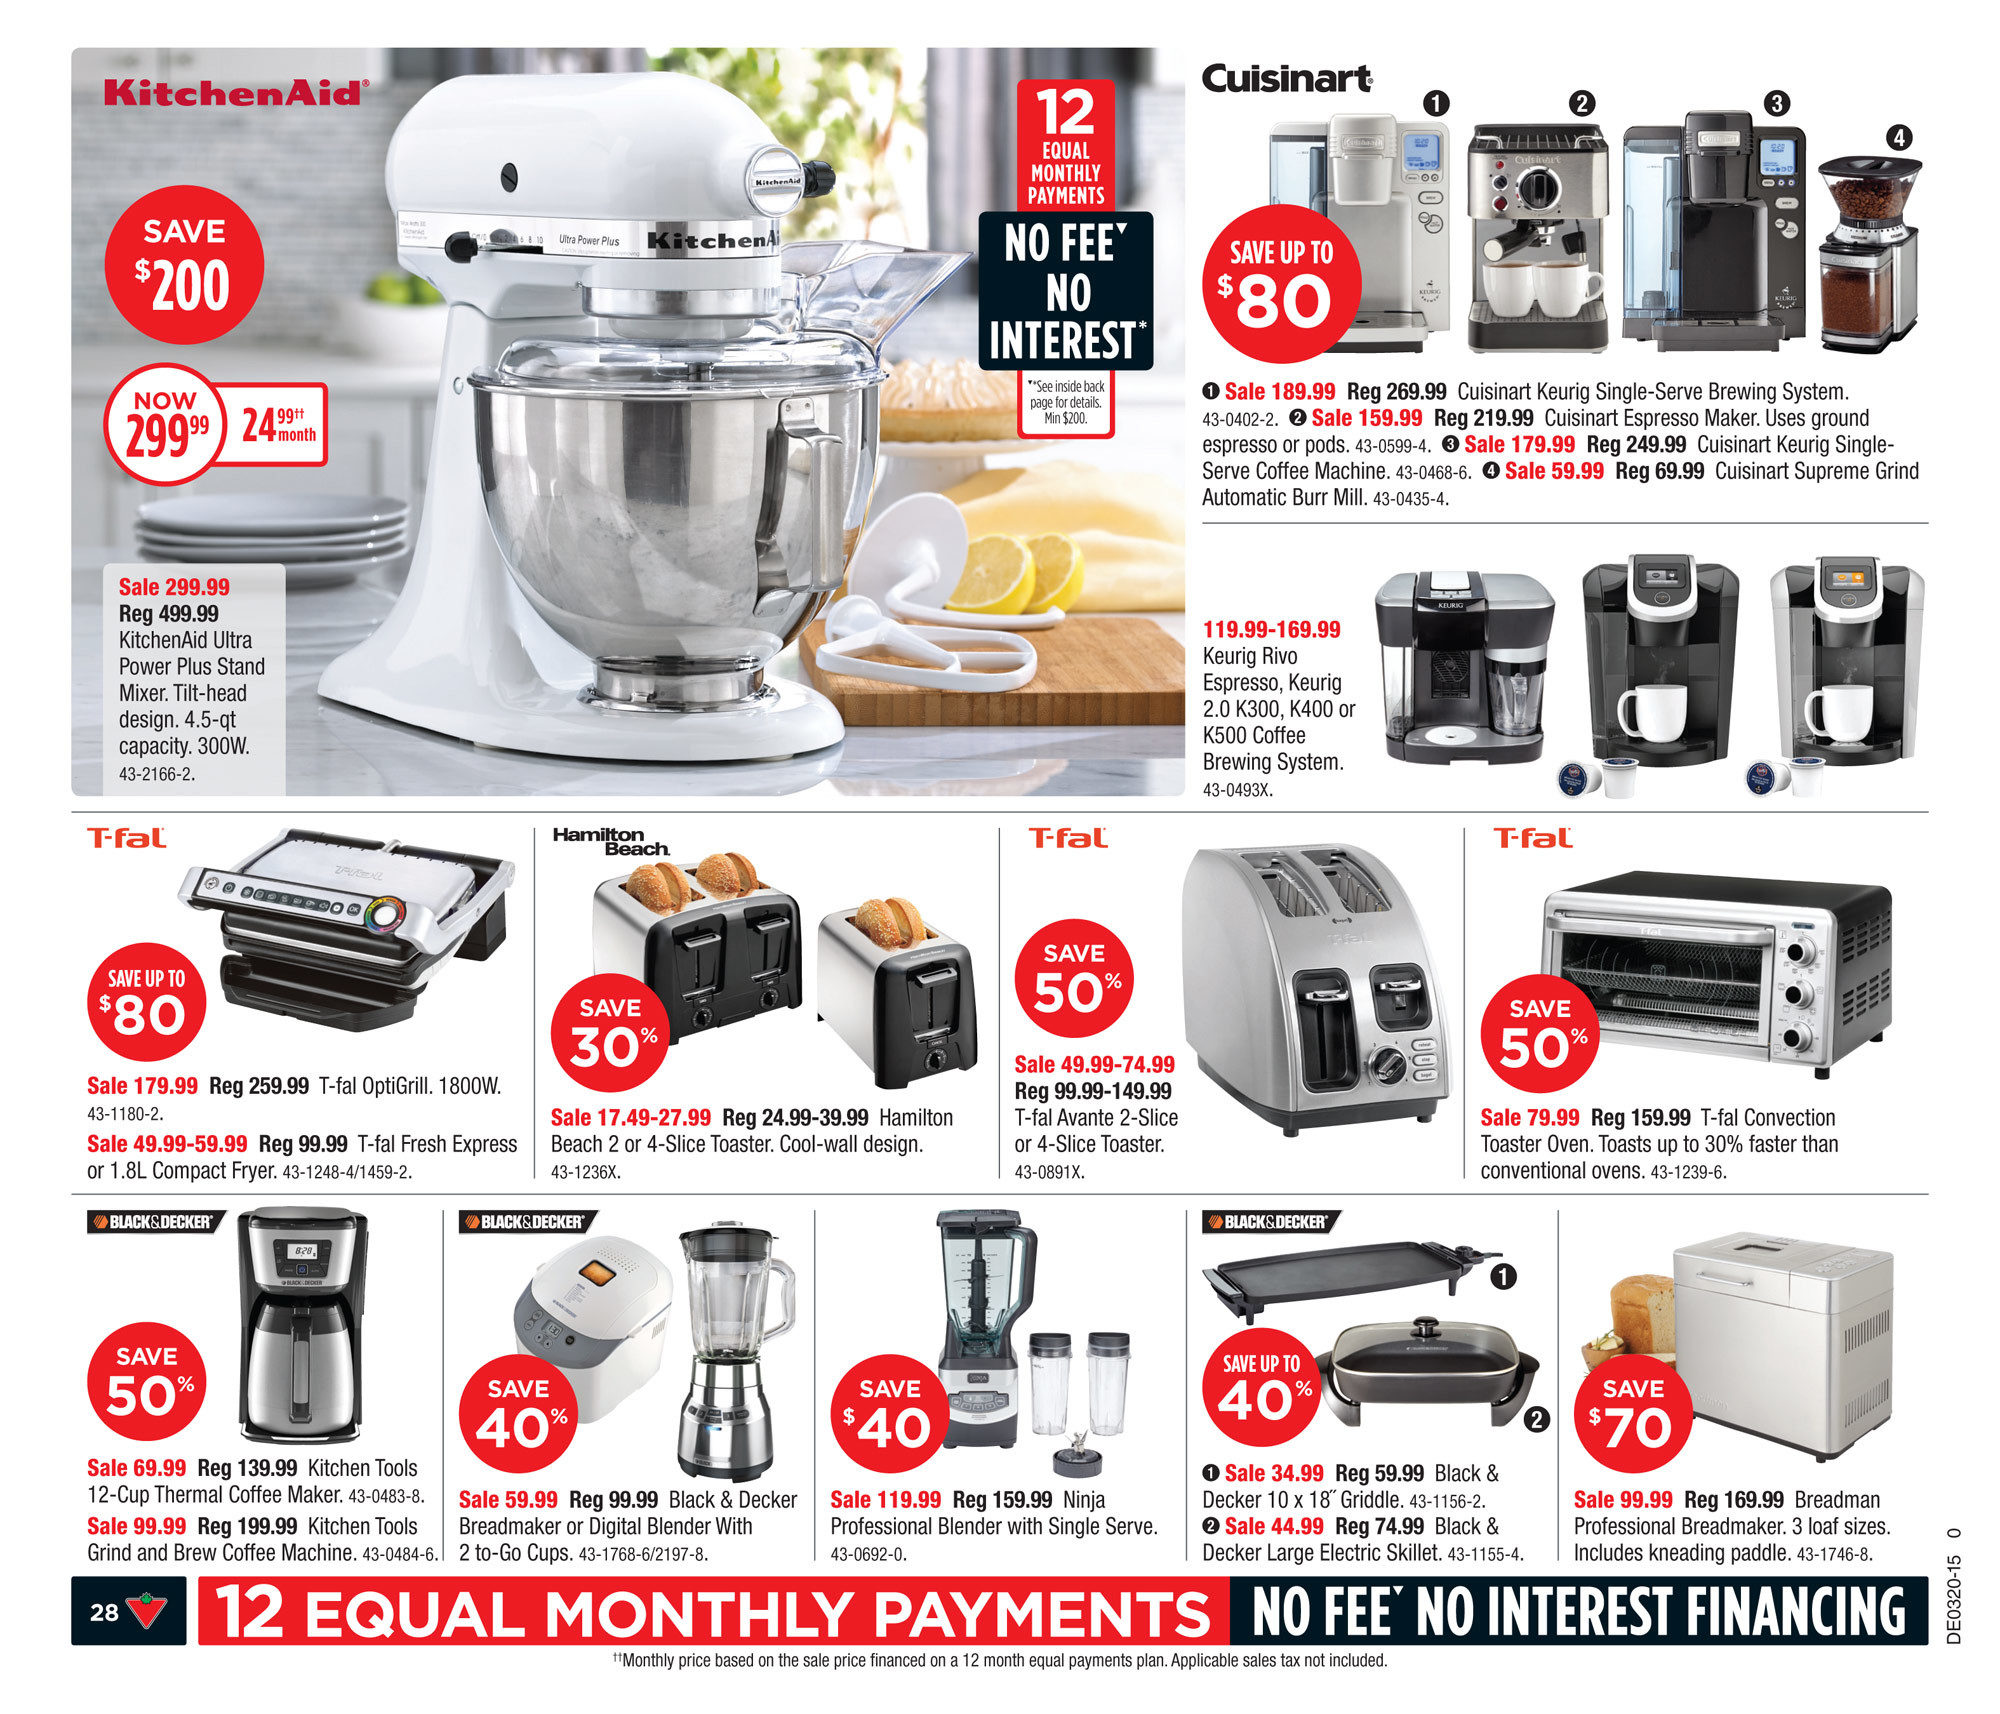 Red Coffee Maker Canadian Tire : Canadian Tire Weekly Flyer - Weekly Flyer - May 15 21 - RedFlagDeals.com